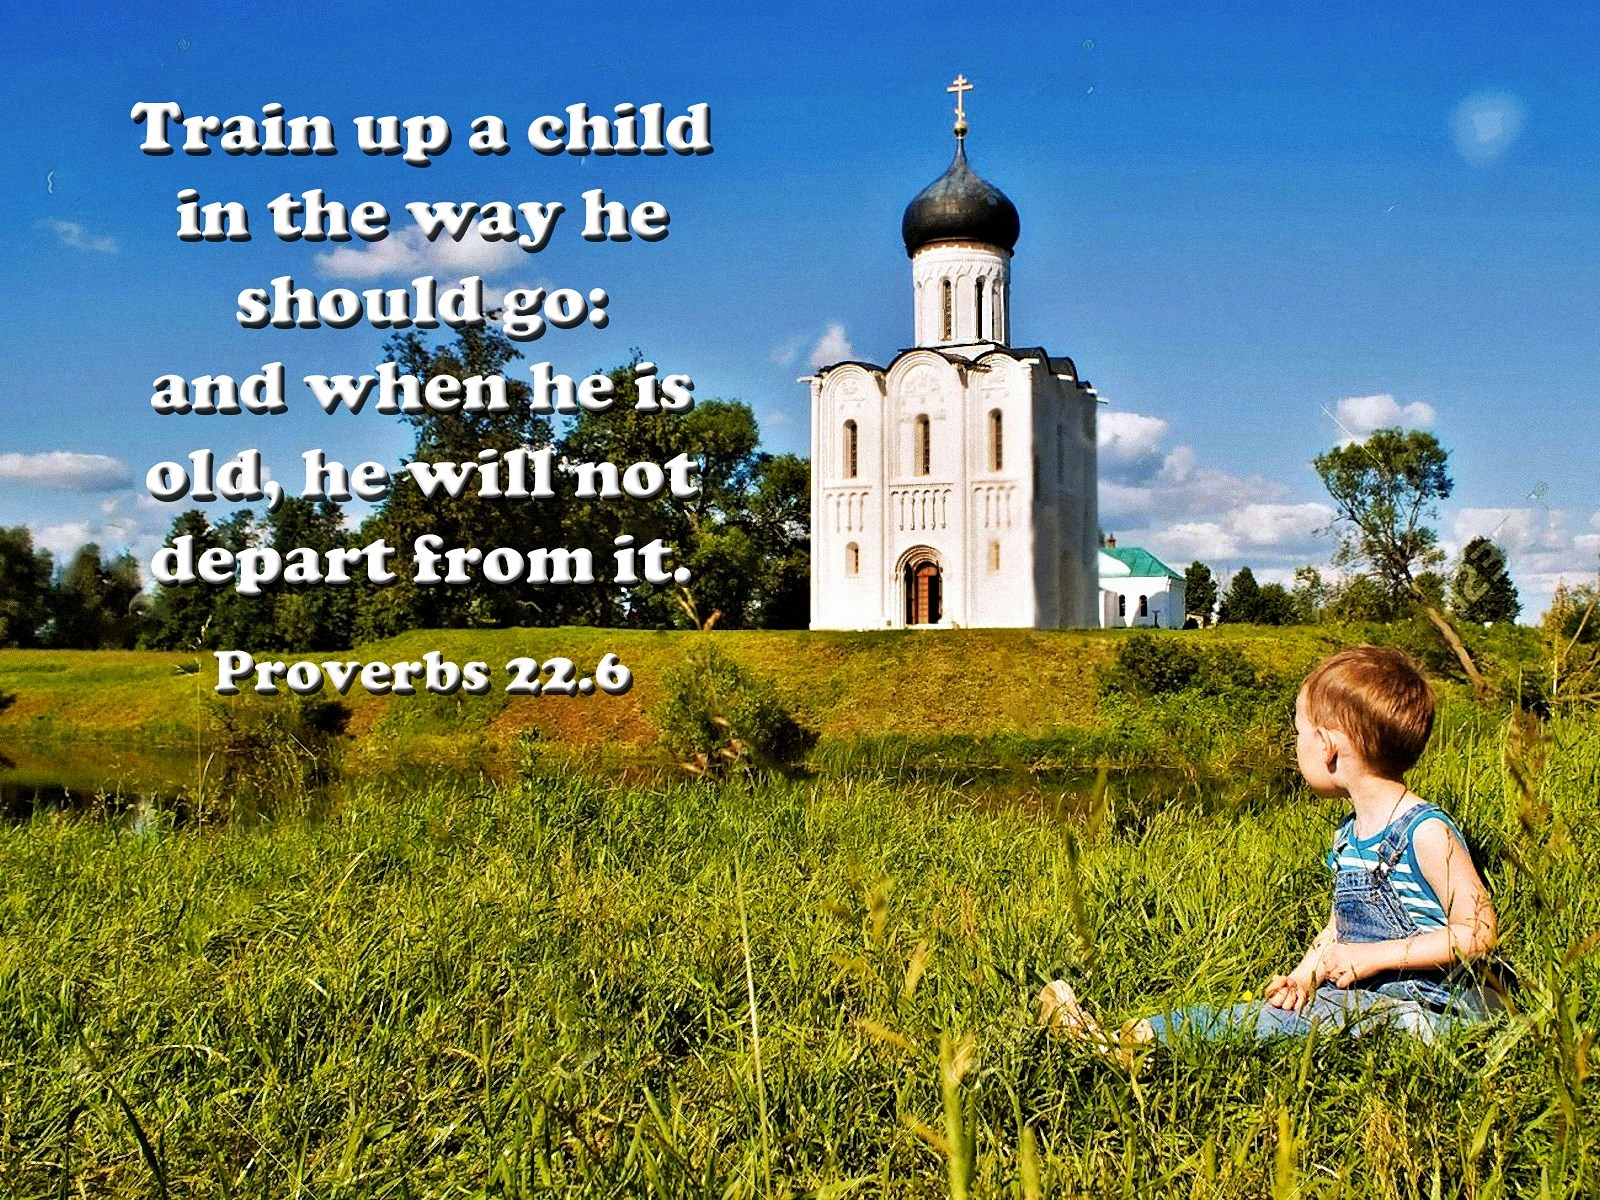 00 russia kid and church proverbs 22. 280316